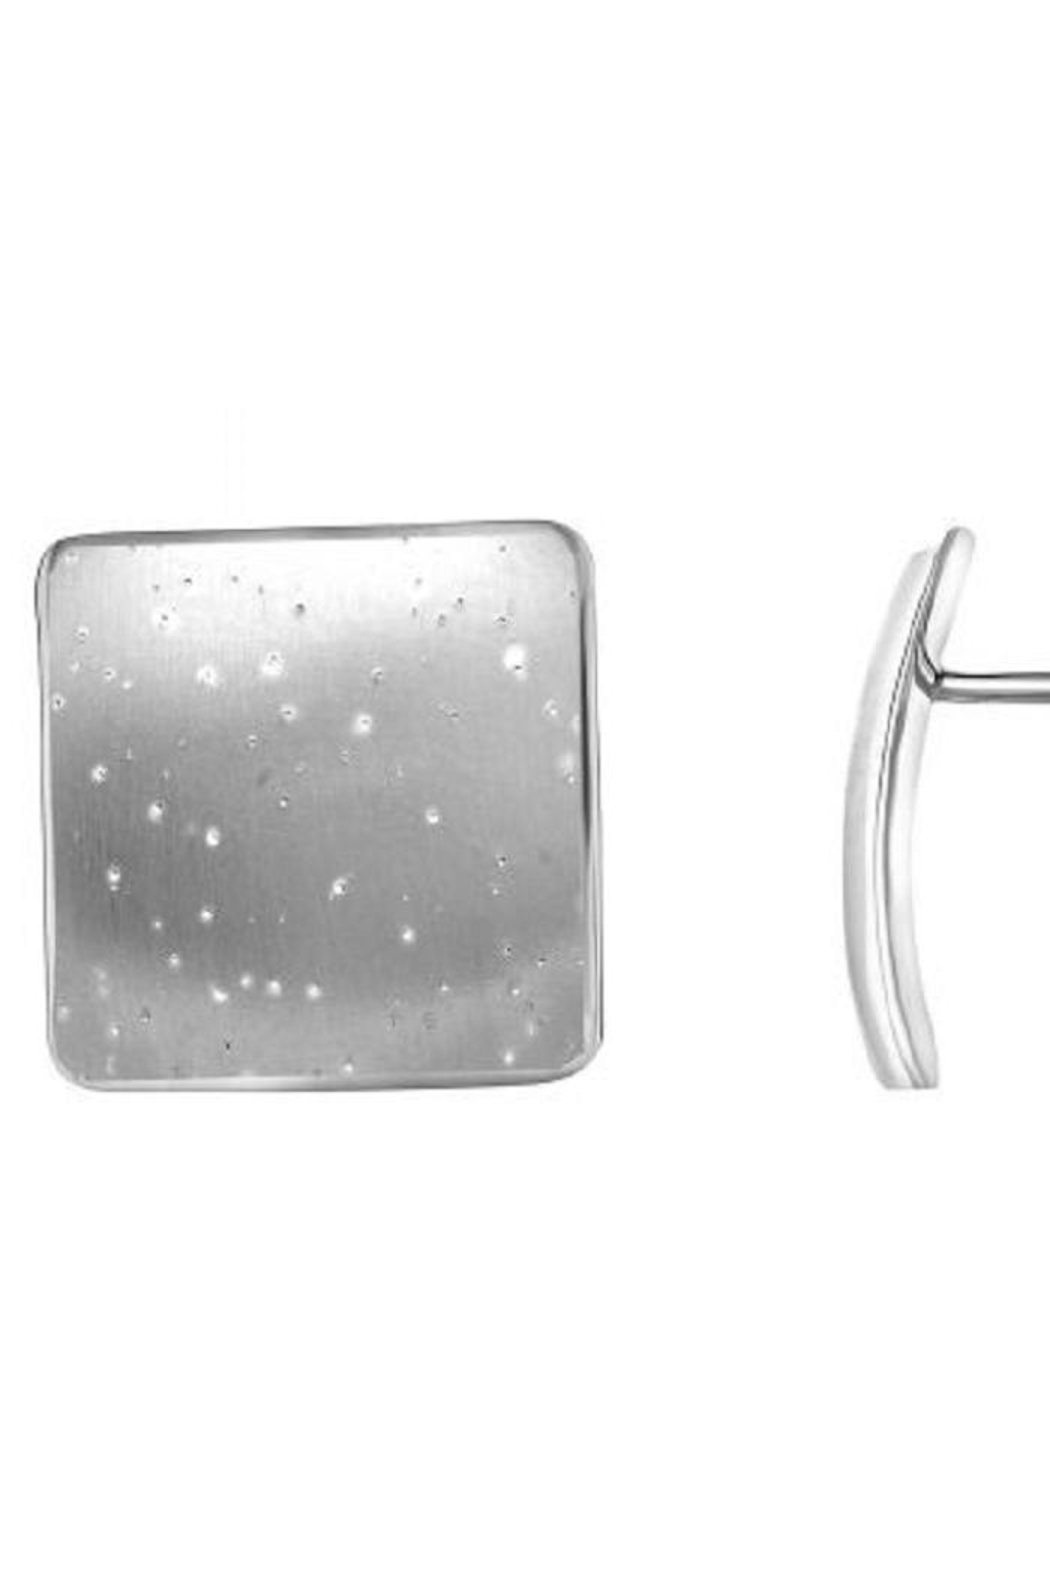 Bling It Around Again Concave Square Earrings - Main Image